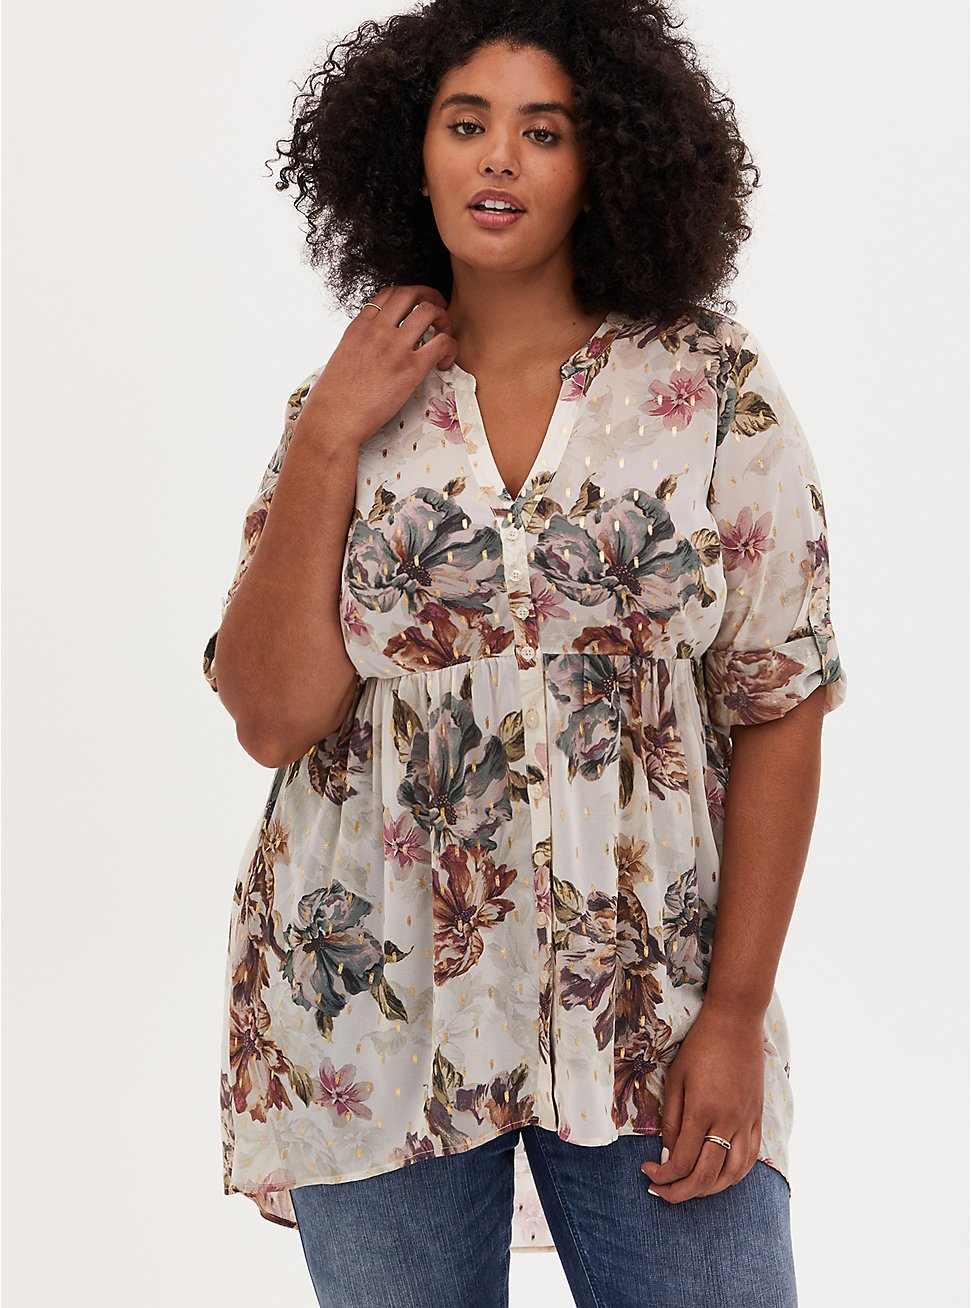 Lexie - Ivory Floral Chiffon Hi-Lo Babydoll Tunic, FLORAL - IVORY, hi-res